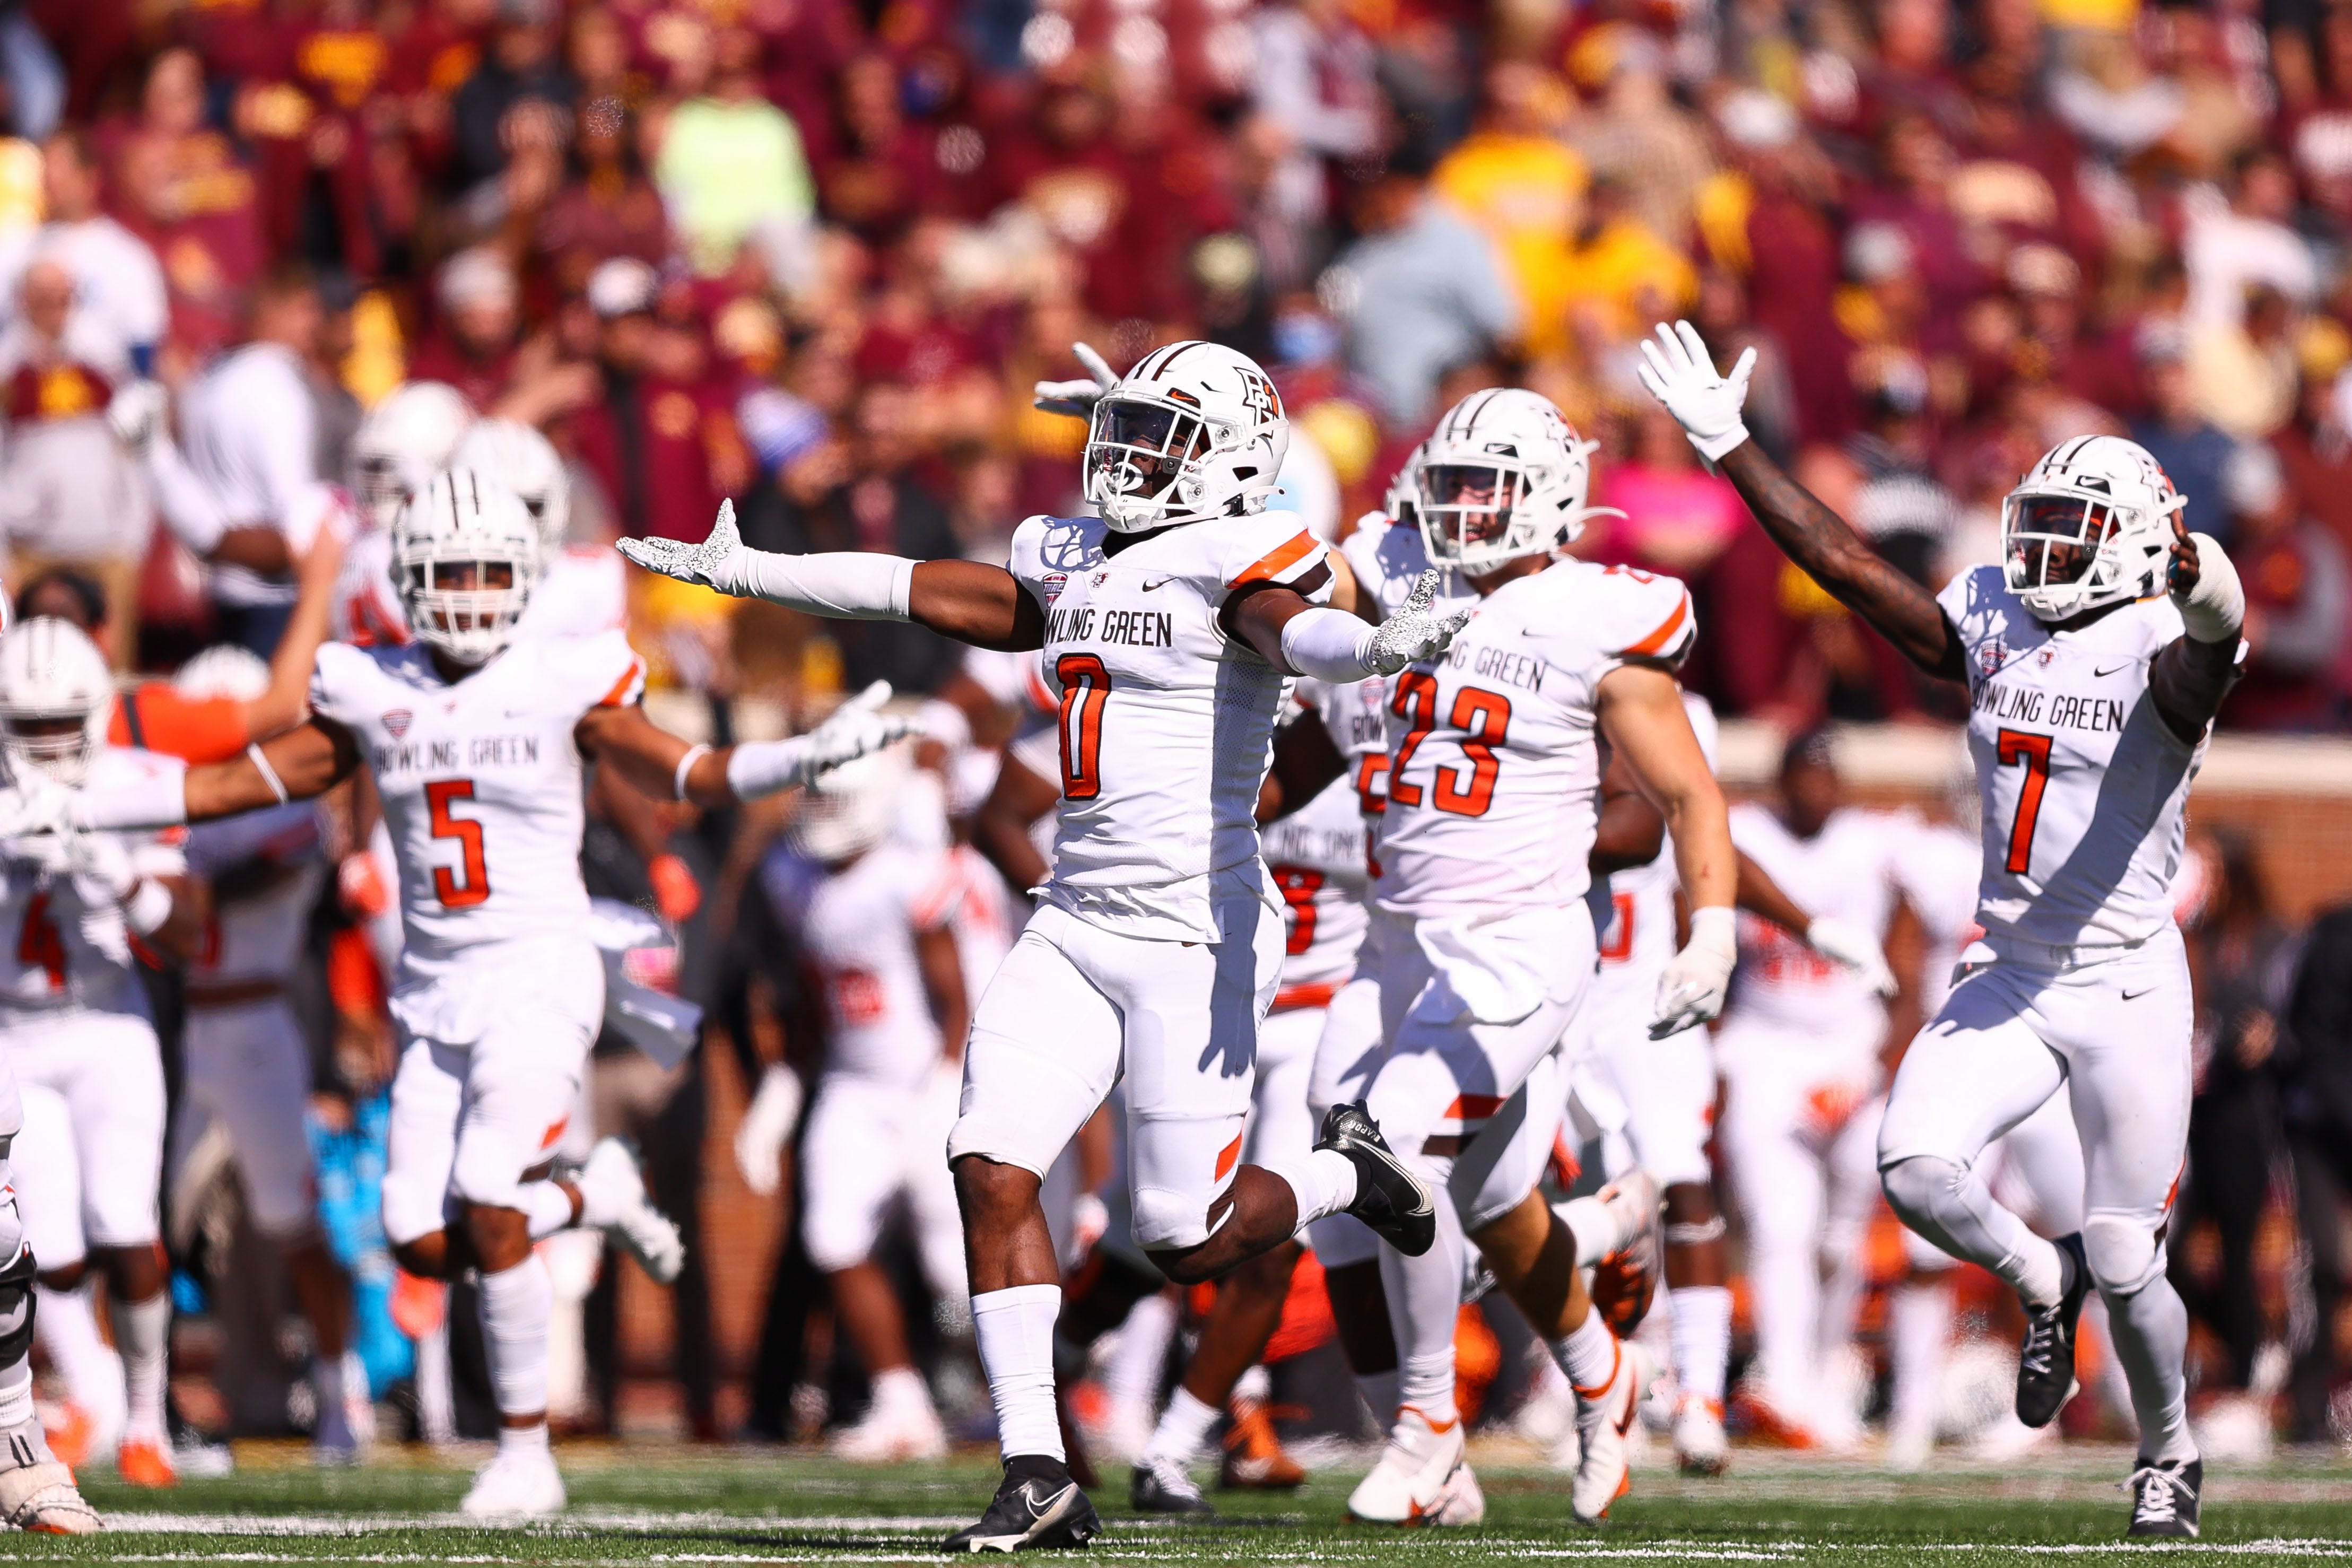 College football winners and losers from Week 4: UCLA, Texas gain ground; Minnesota embarrassed